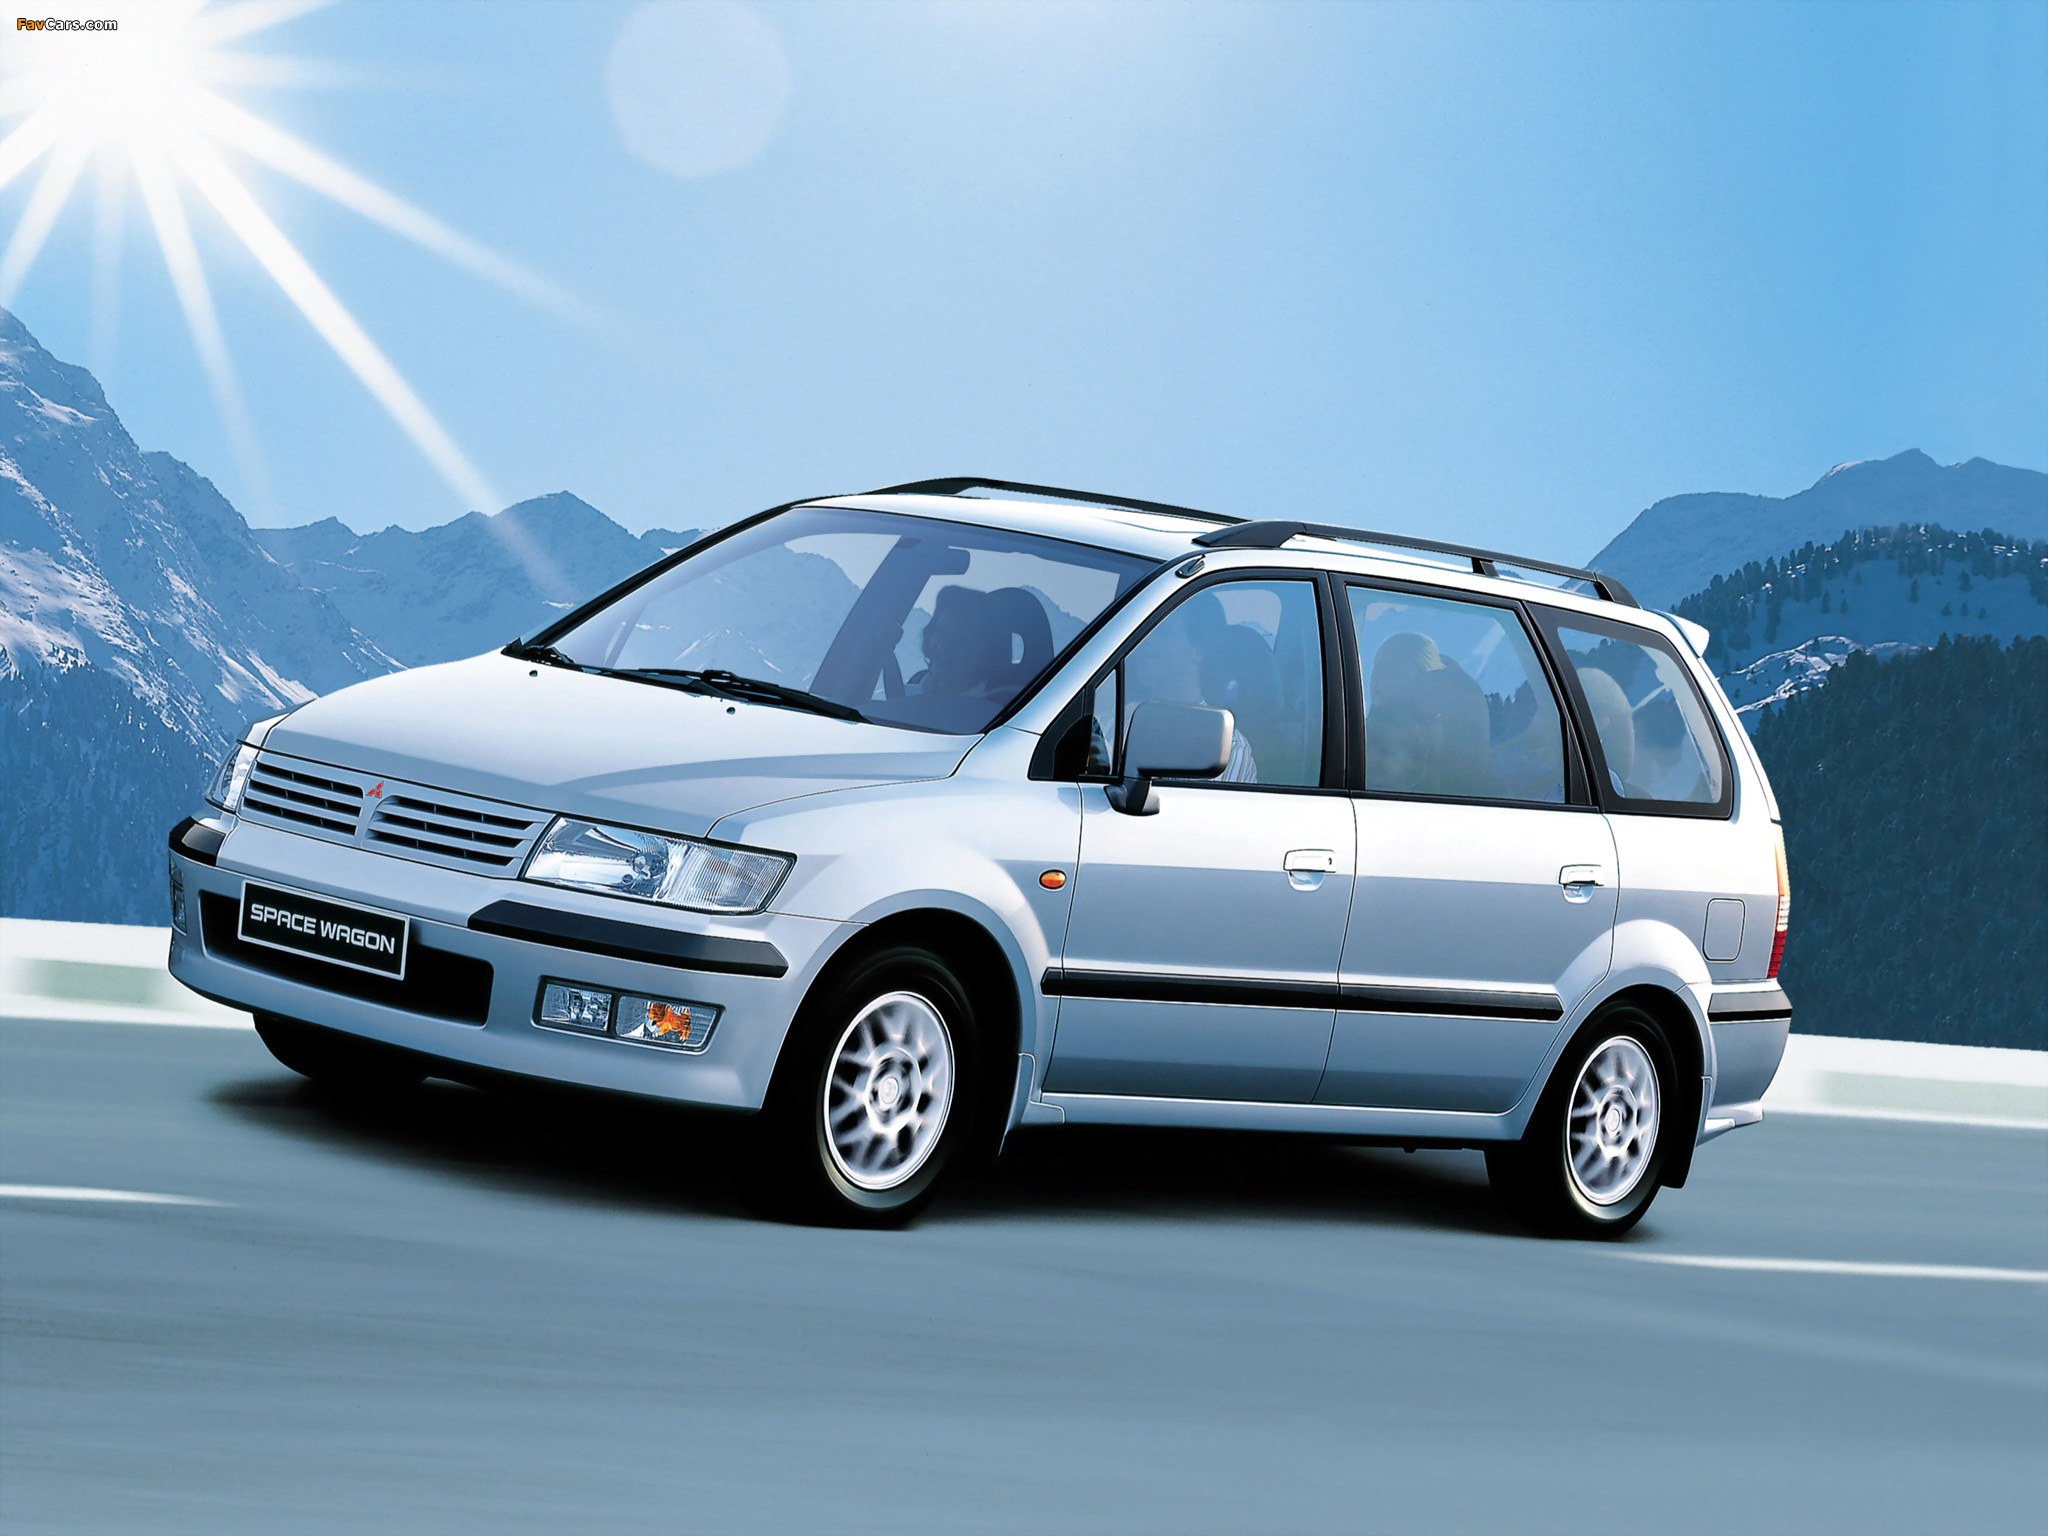 1997 Mitsubishi Space Wagon #14